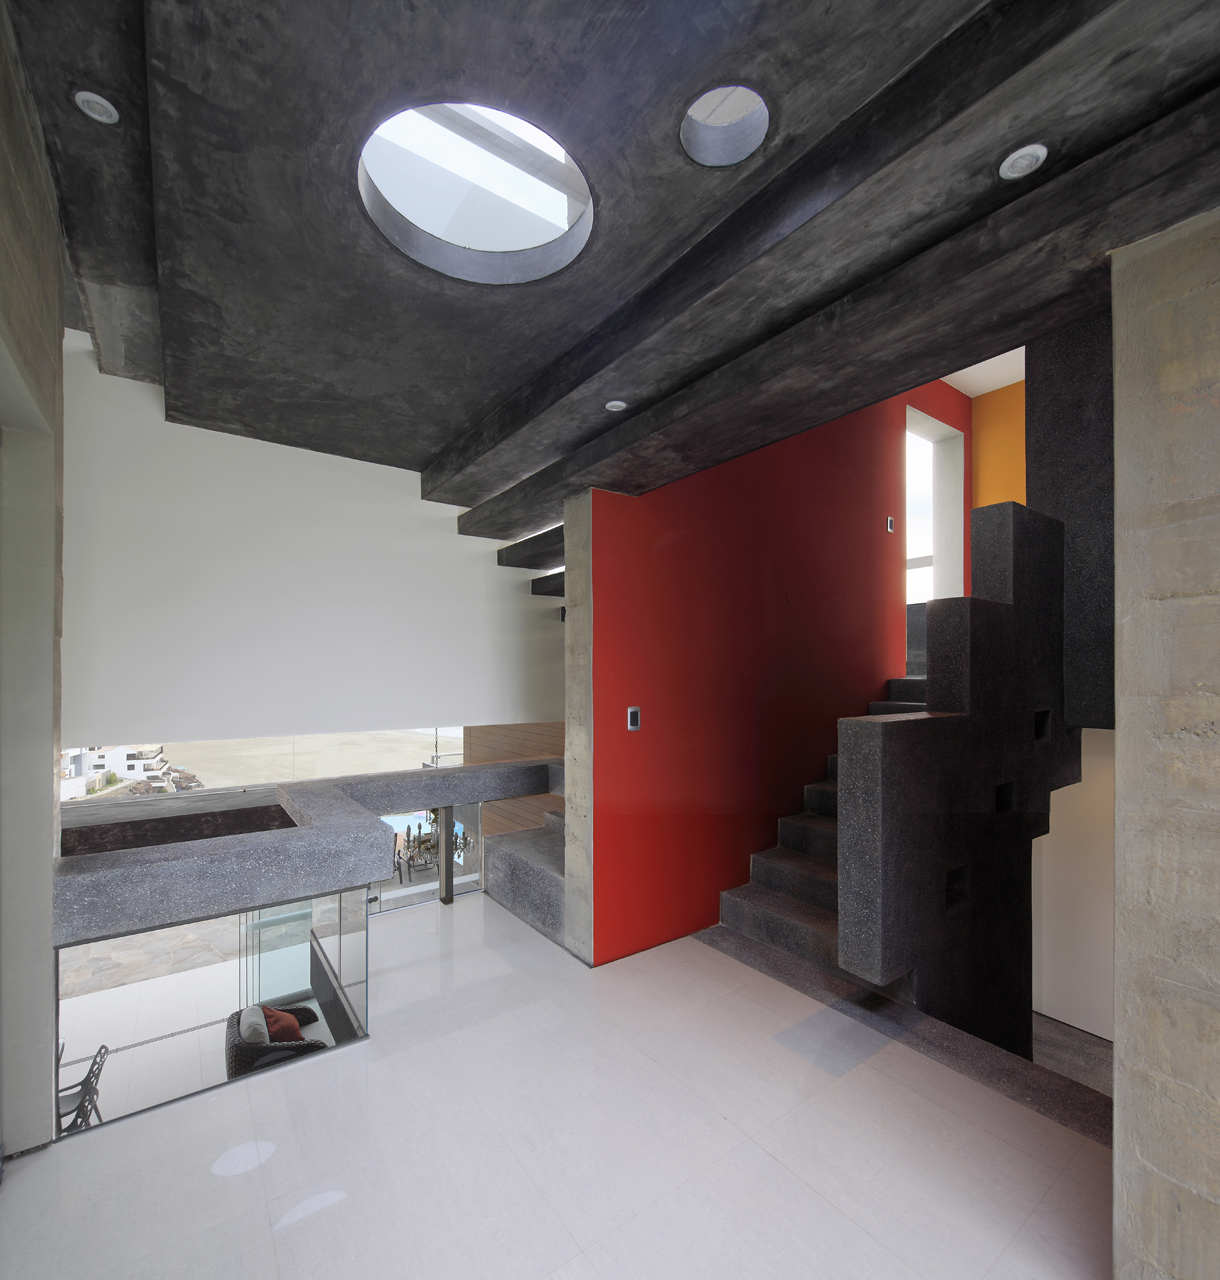 Volumes With Gender By Longhi Architects Karmatrendz